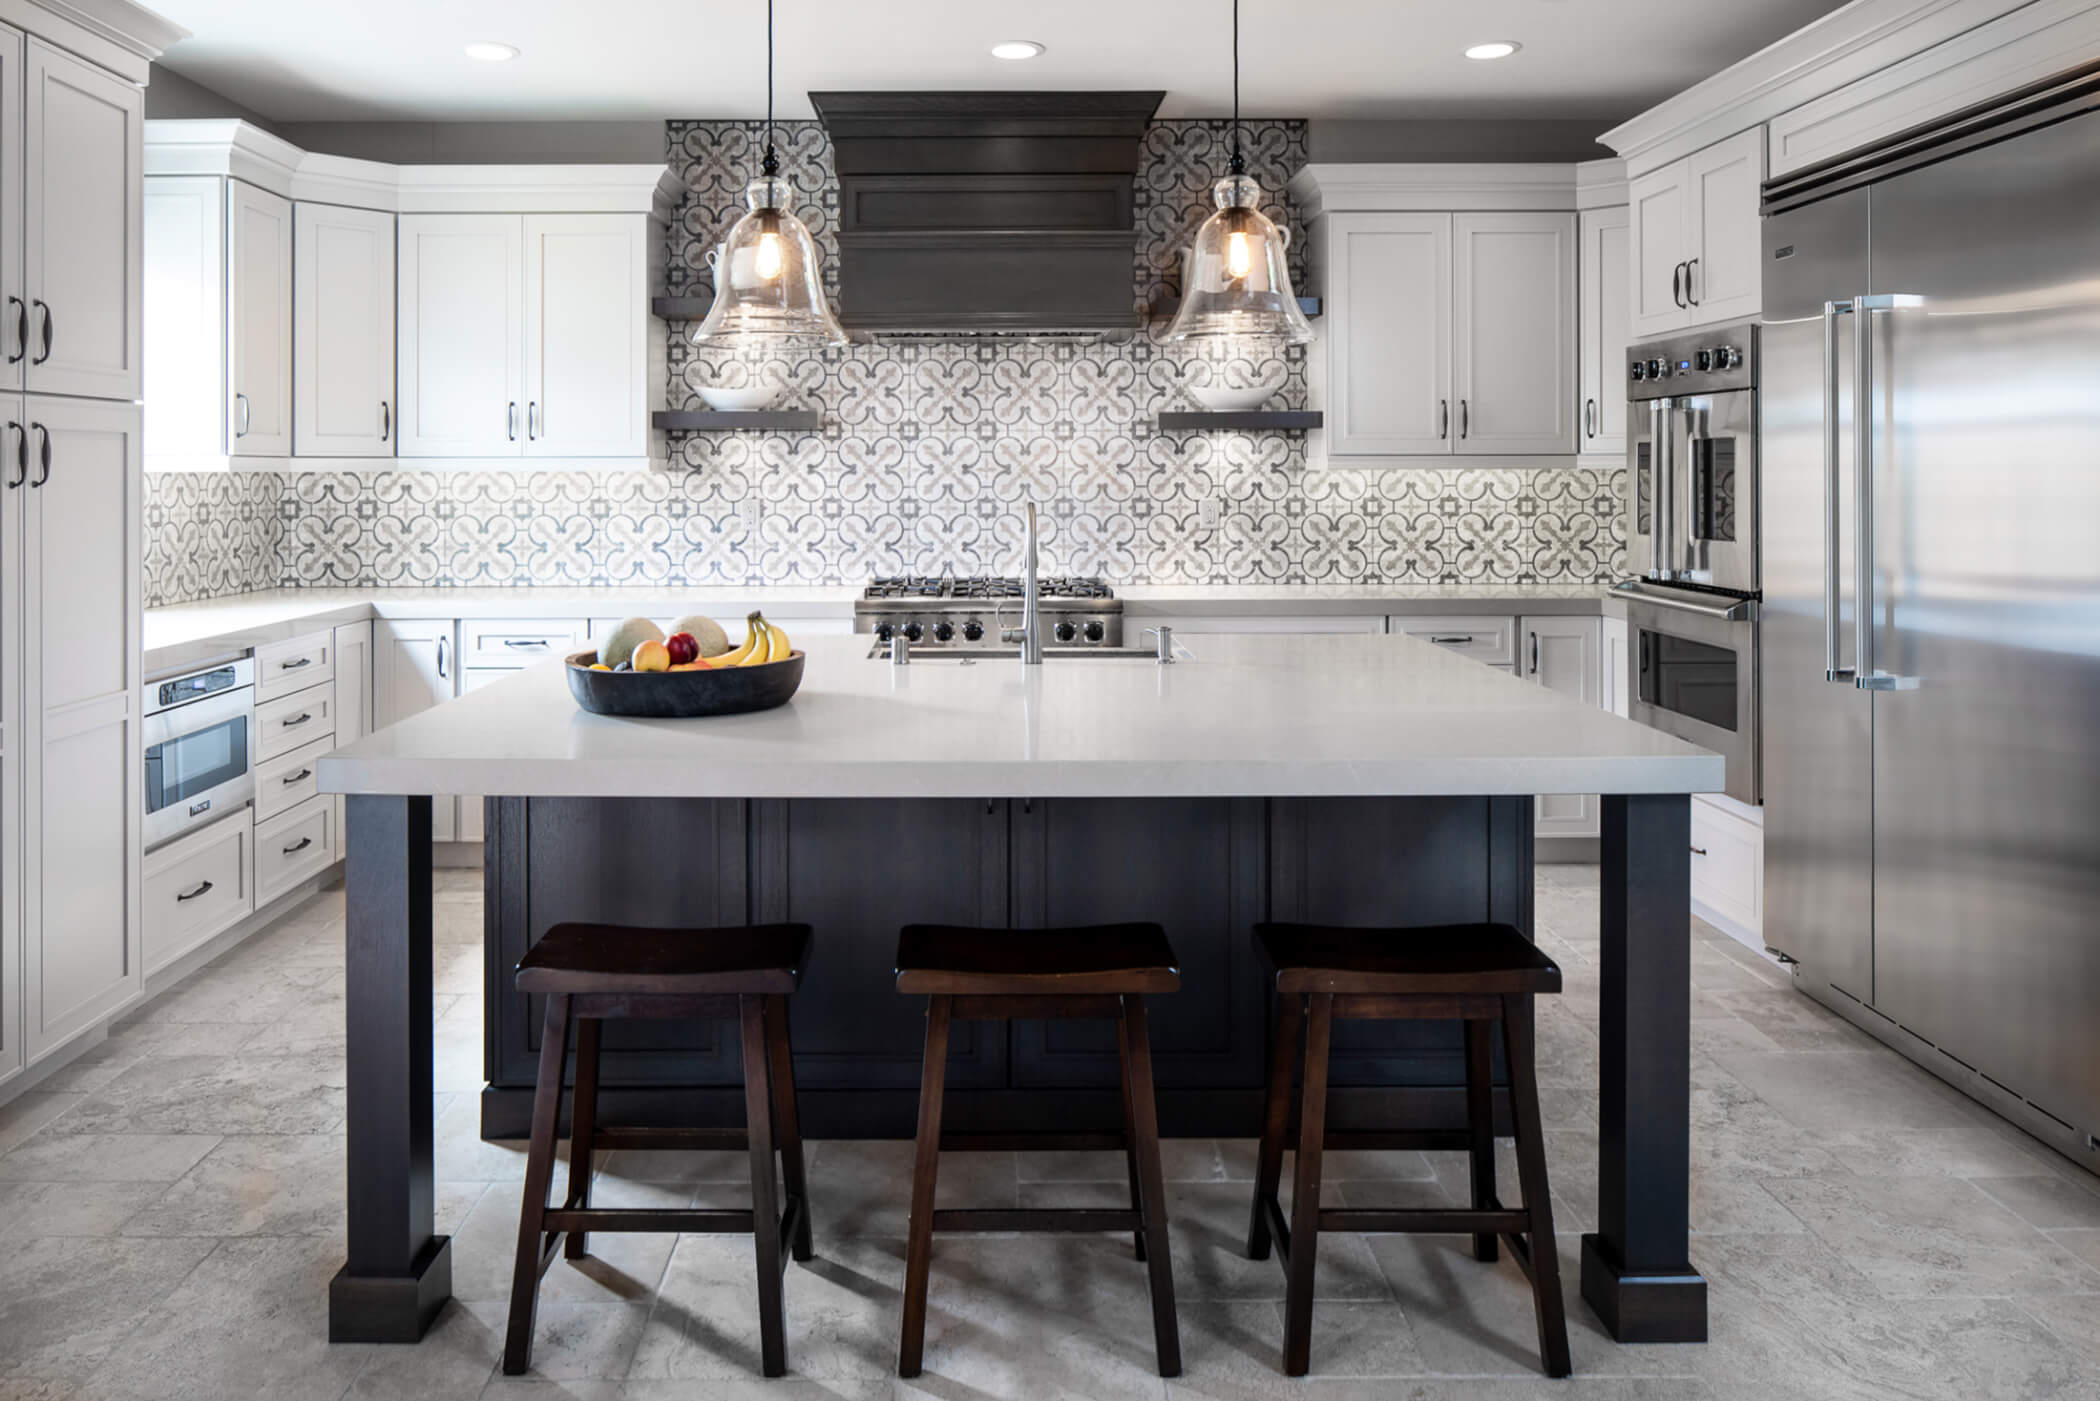 Kitchen Lighting Guide For Aging in Place